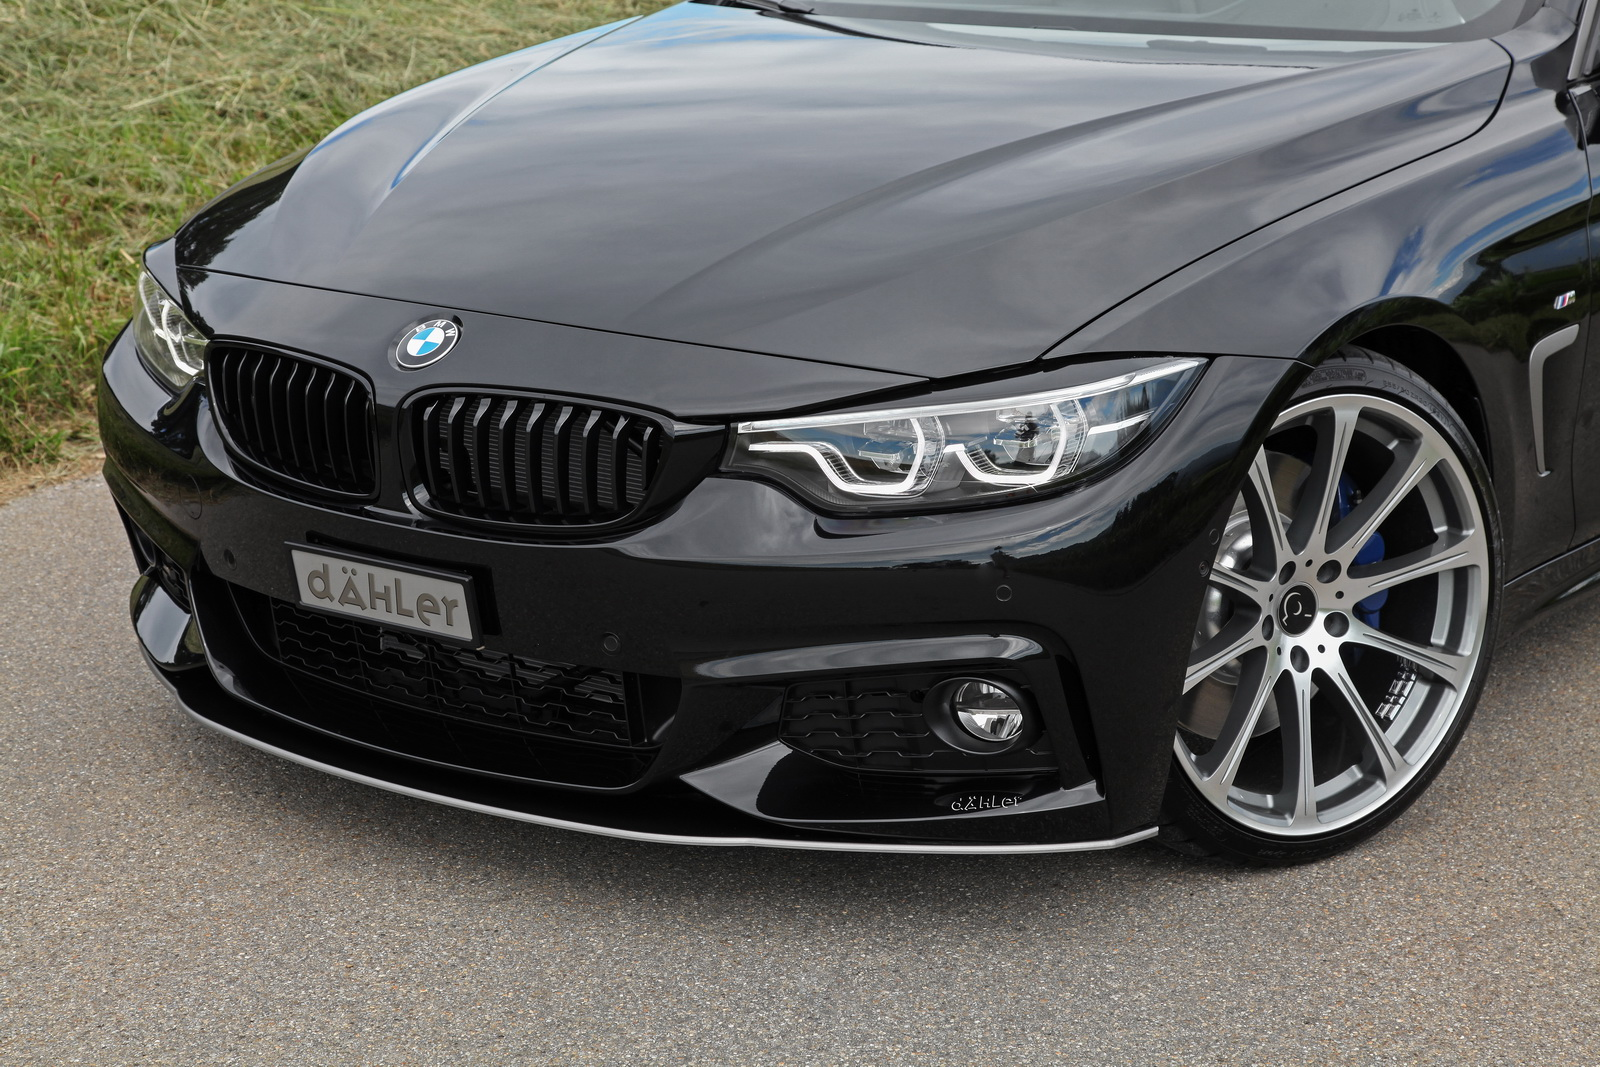 bmw-4-series-440i-dahler-tuning-2